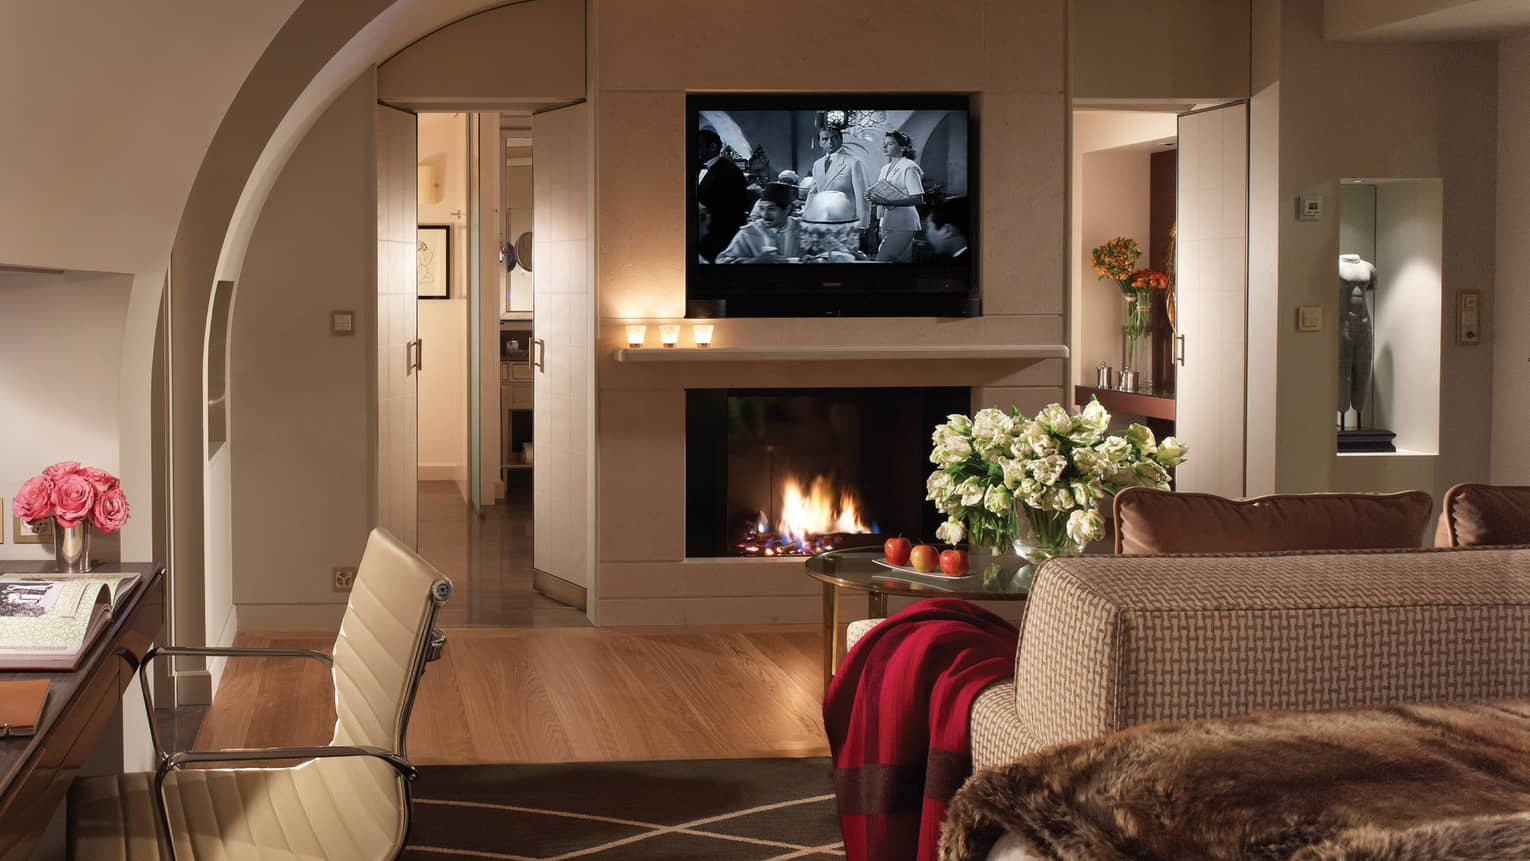 Flat-screen TV showing black-and-white-movie above glass fireplace, sofa with red blanket on arm